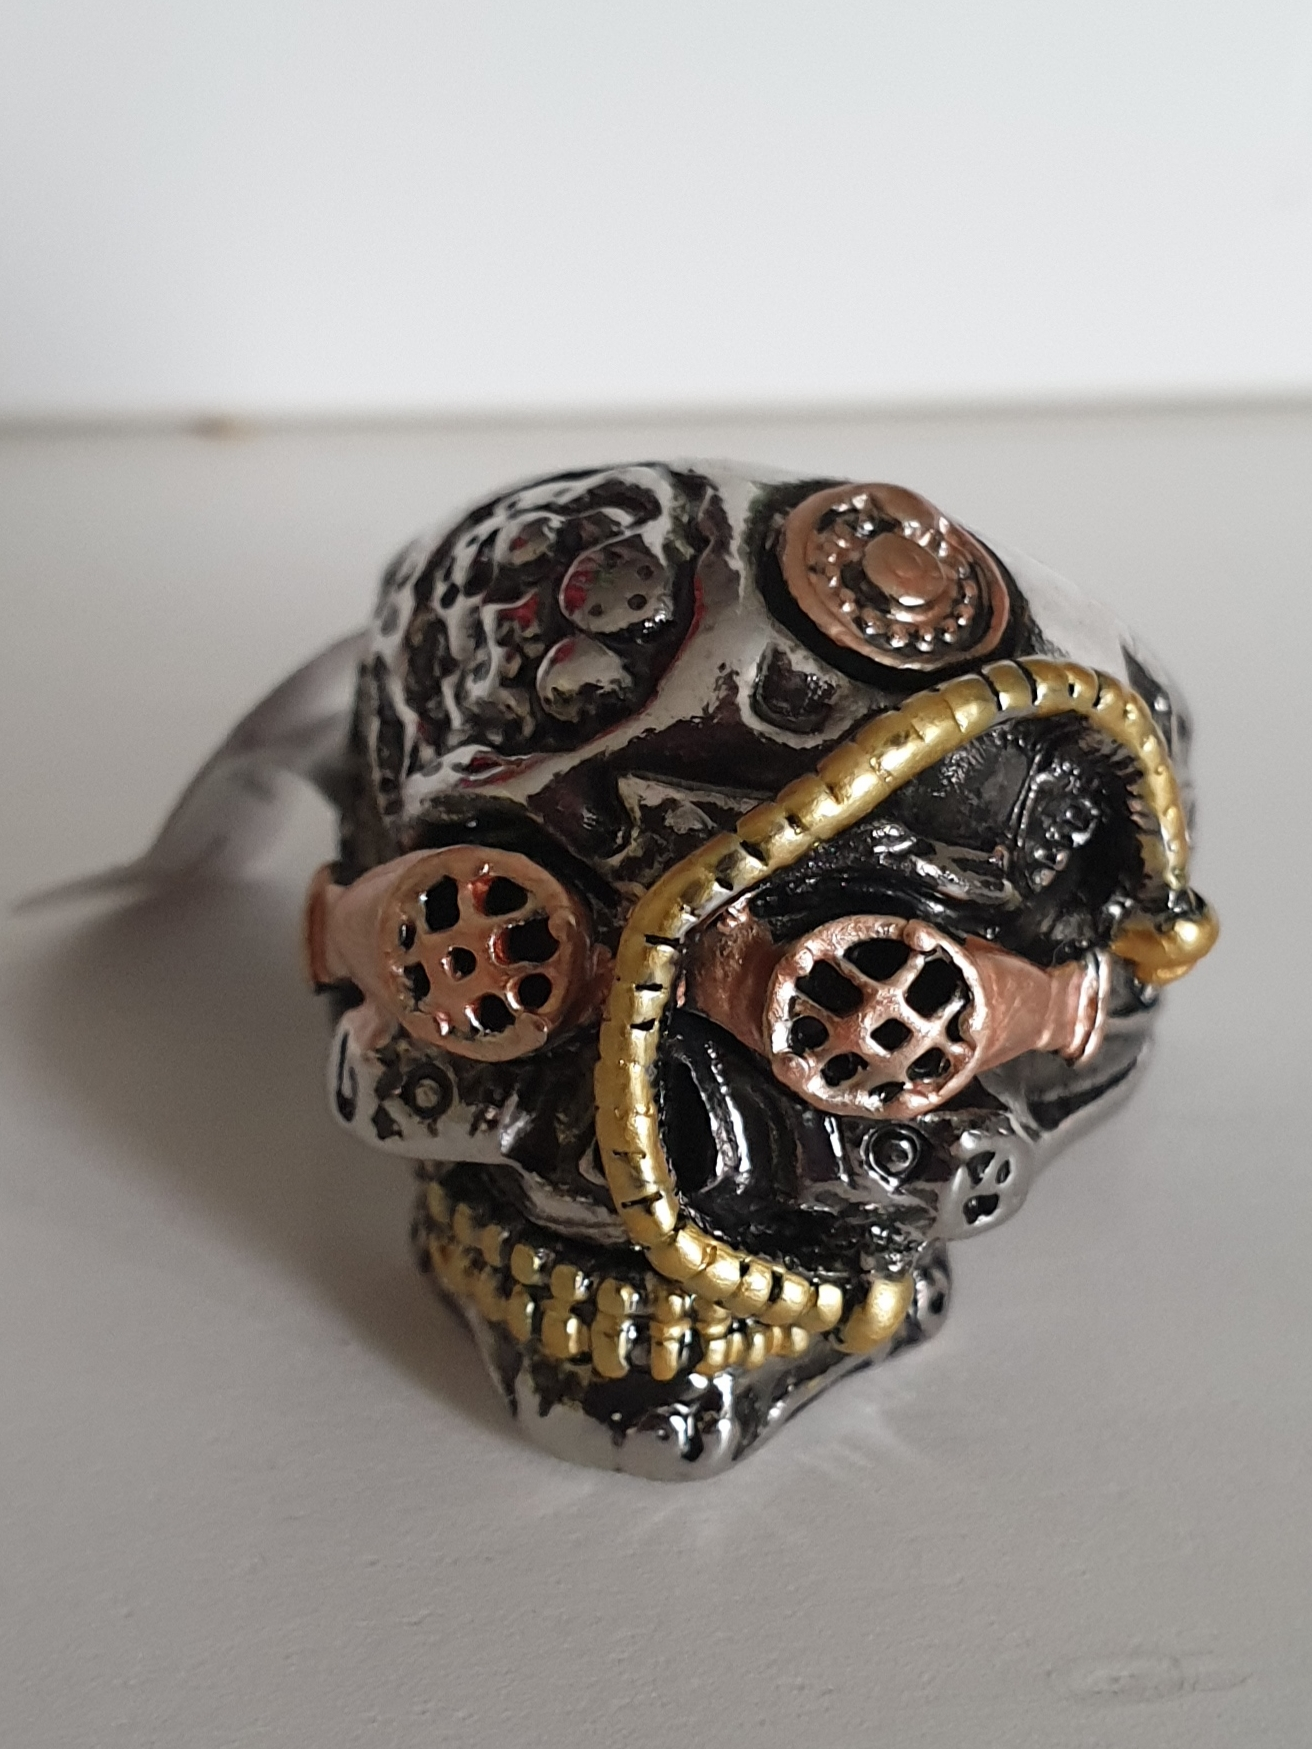 Ring - Steampunk Skull Design